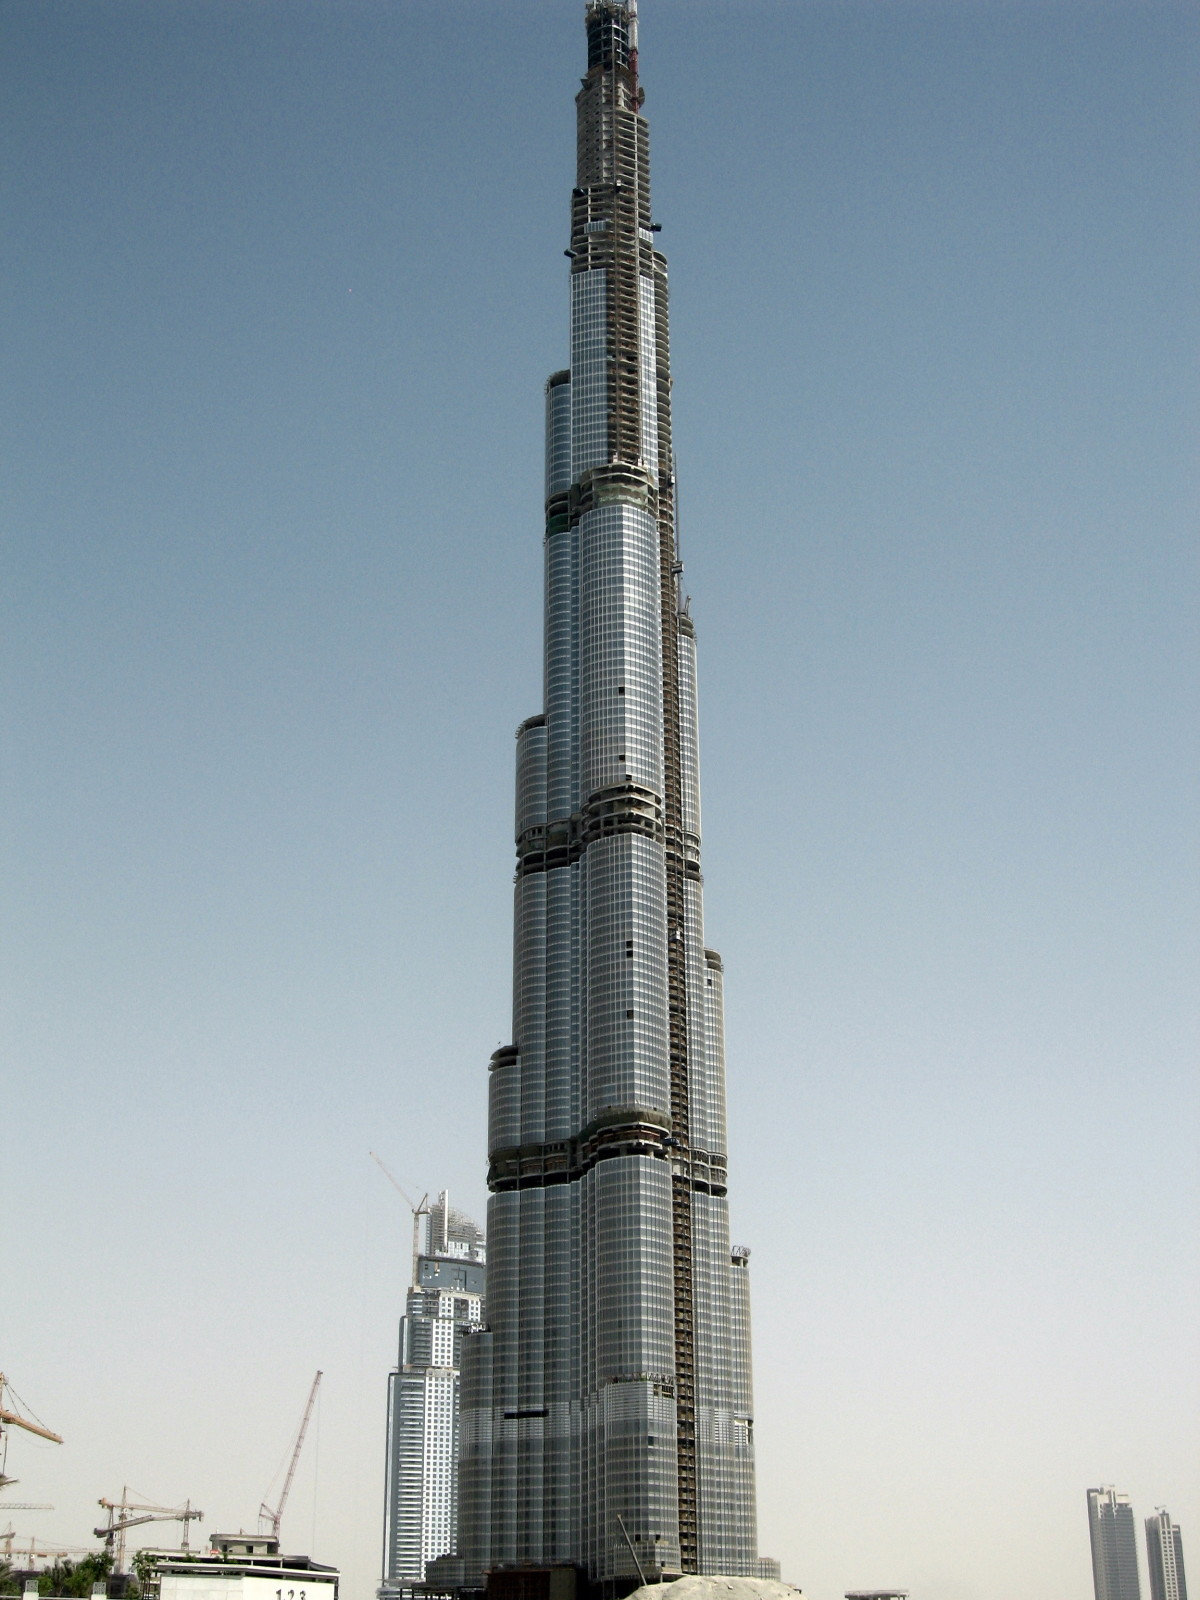 World Visits: Dubai Tower Cool Pictures To beat All Towers